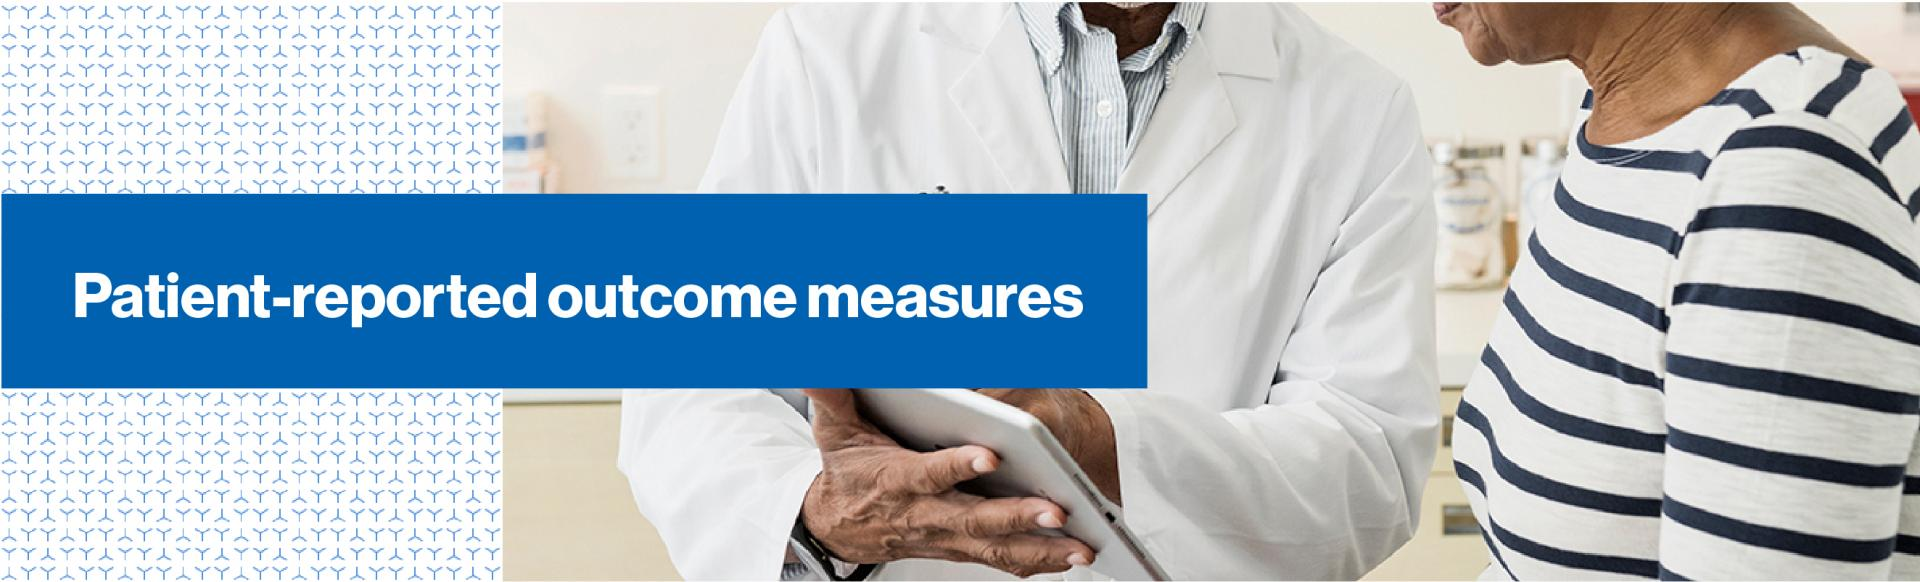 Patient-reported outcome measures